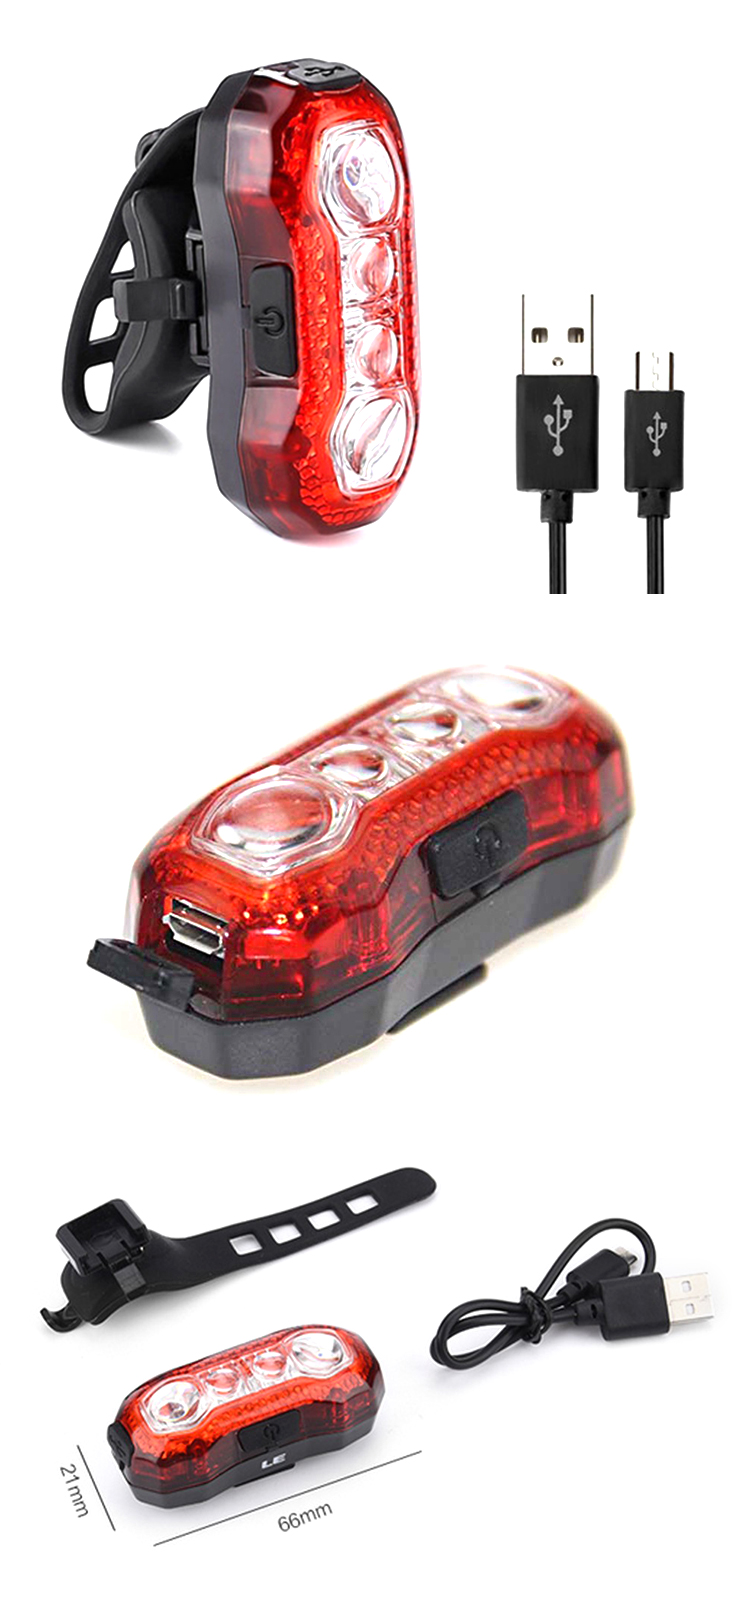 Hot Selling Mini Silicone LED Flashing Bike Light For Night Warning